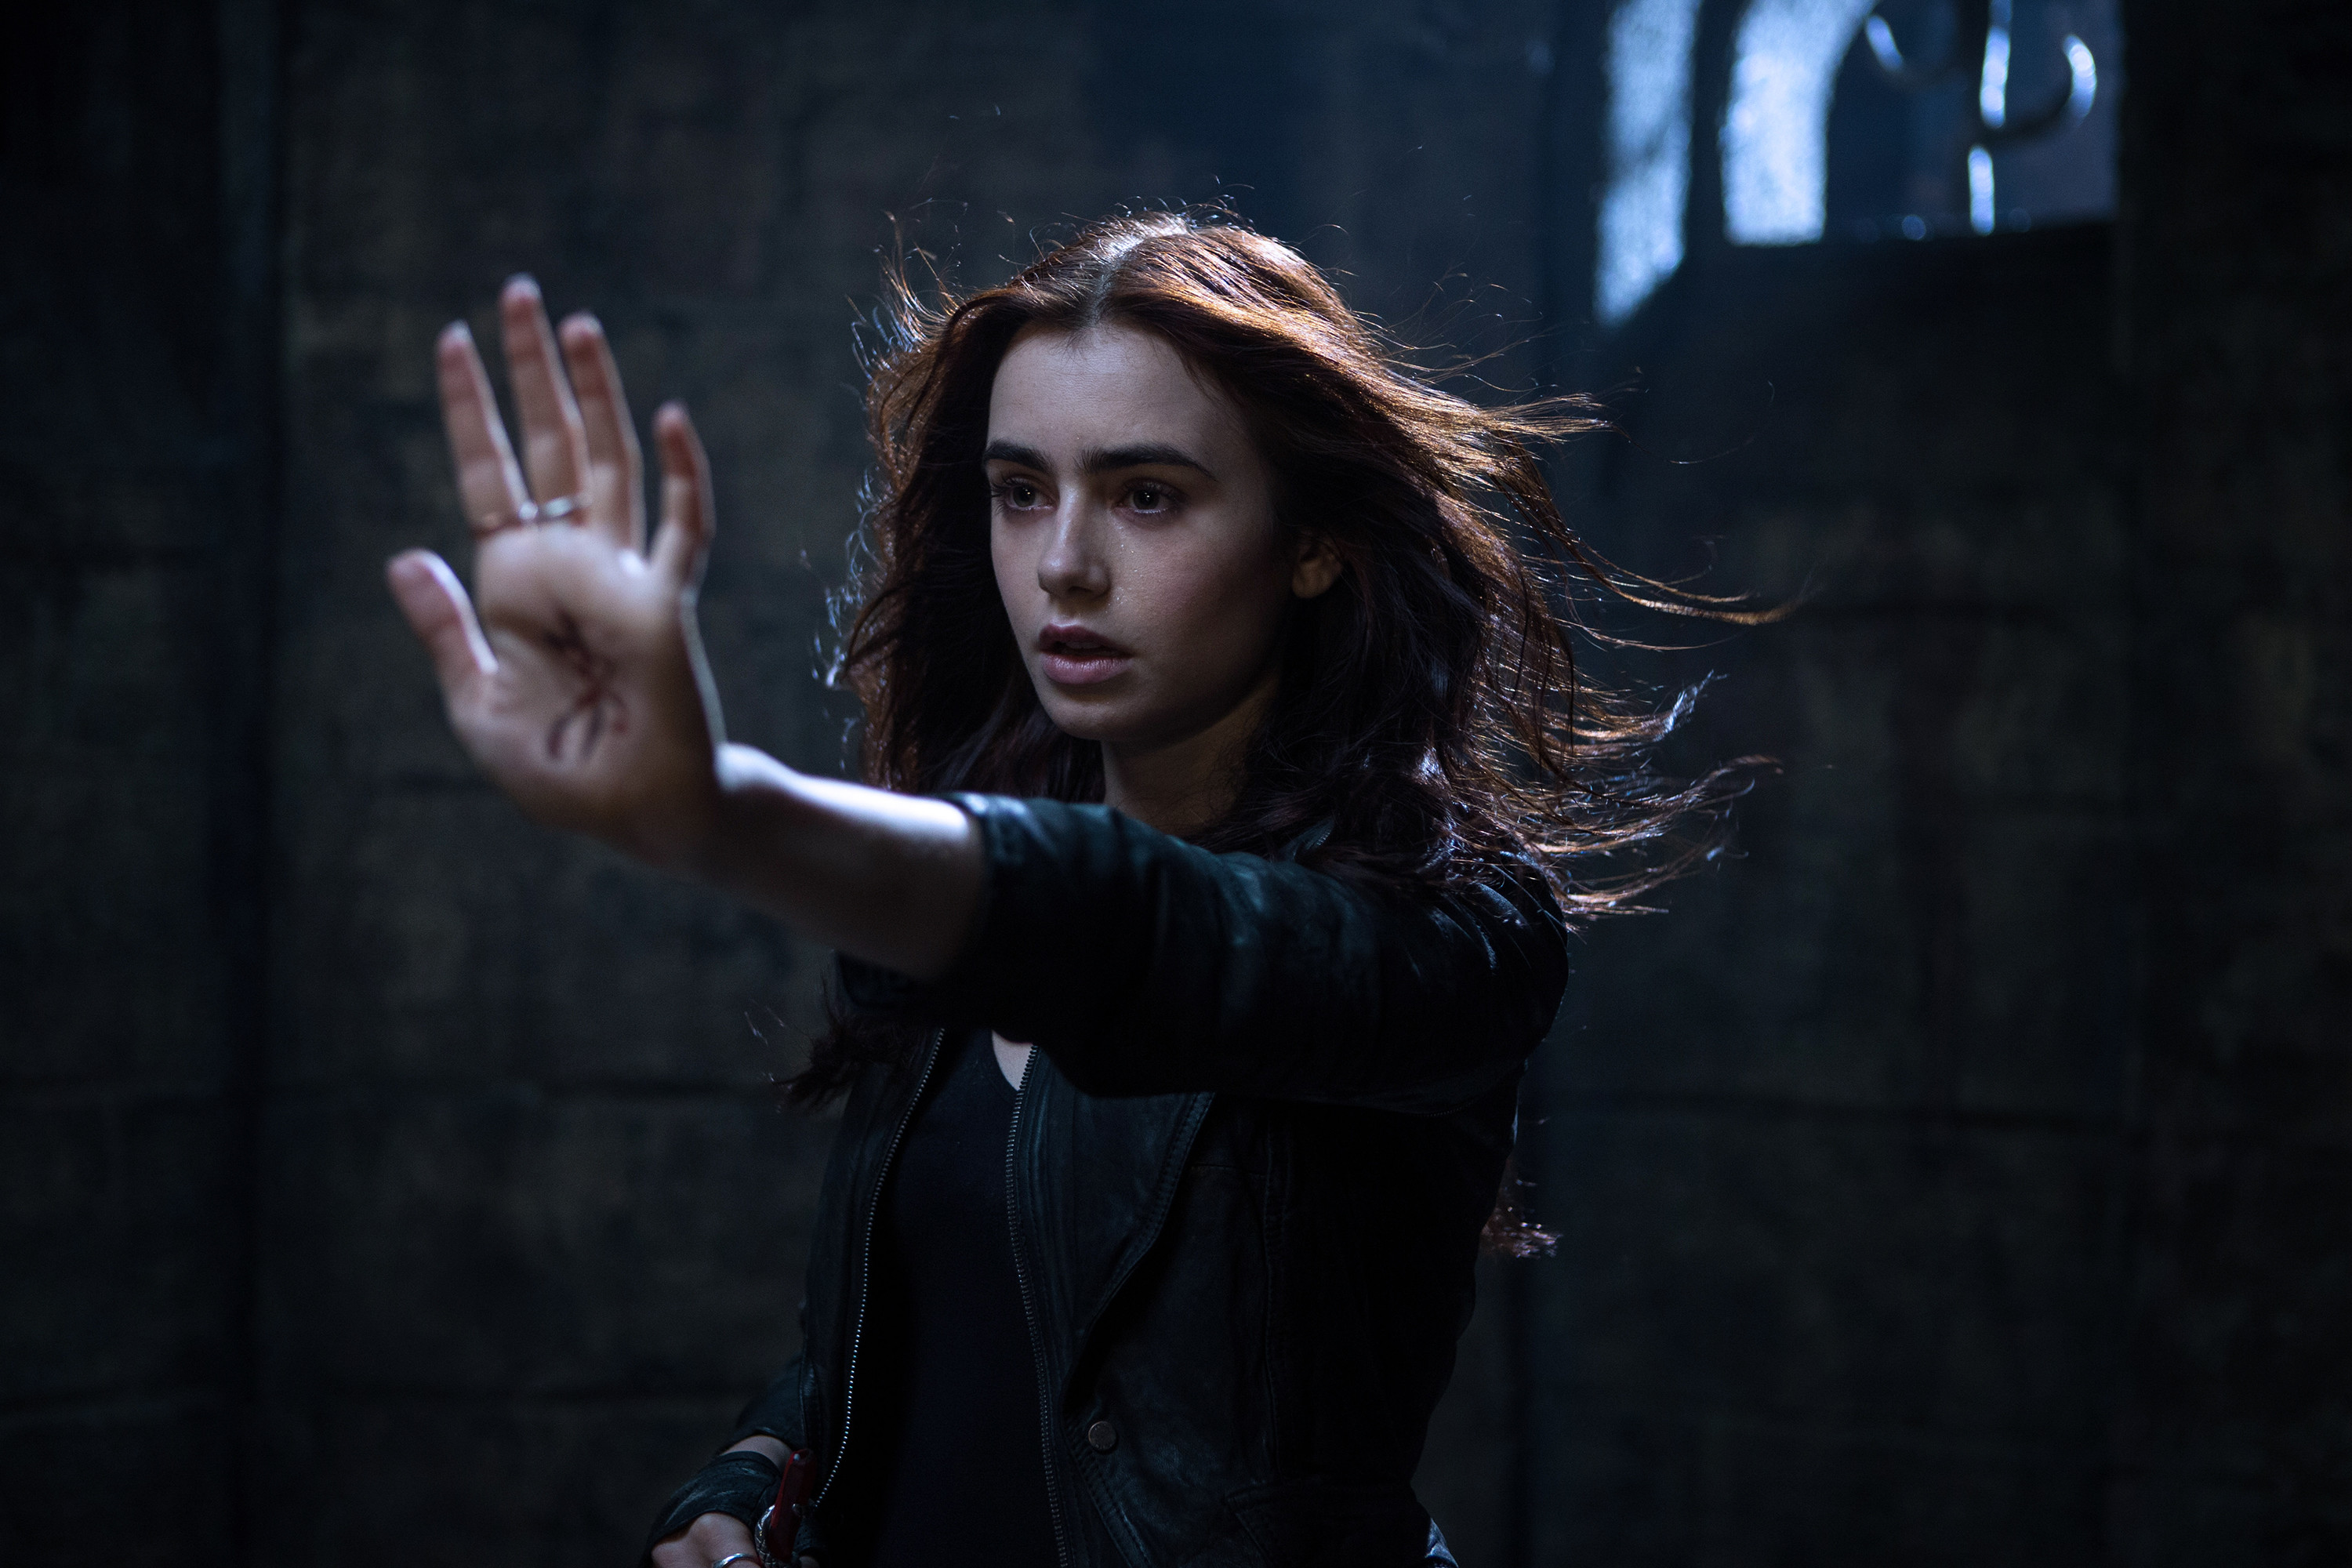 3000x2000 the-mortal-instruments-city-of-bones-lily-collins